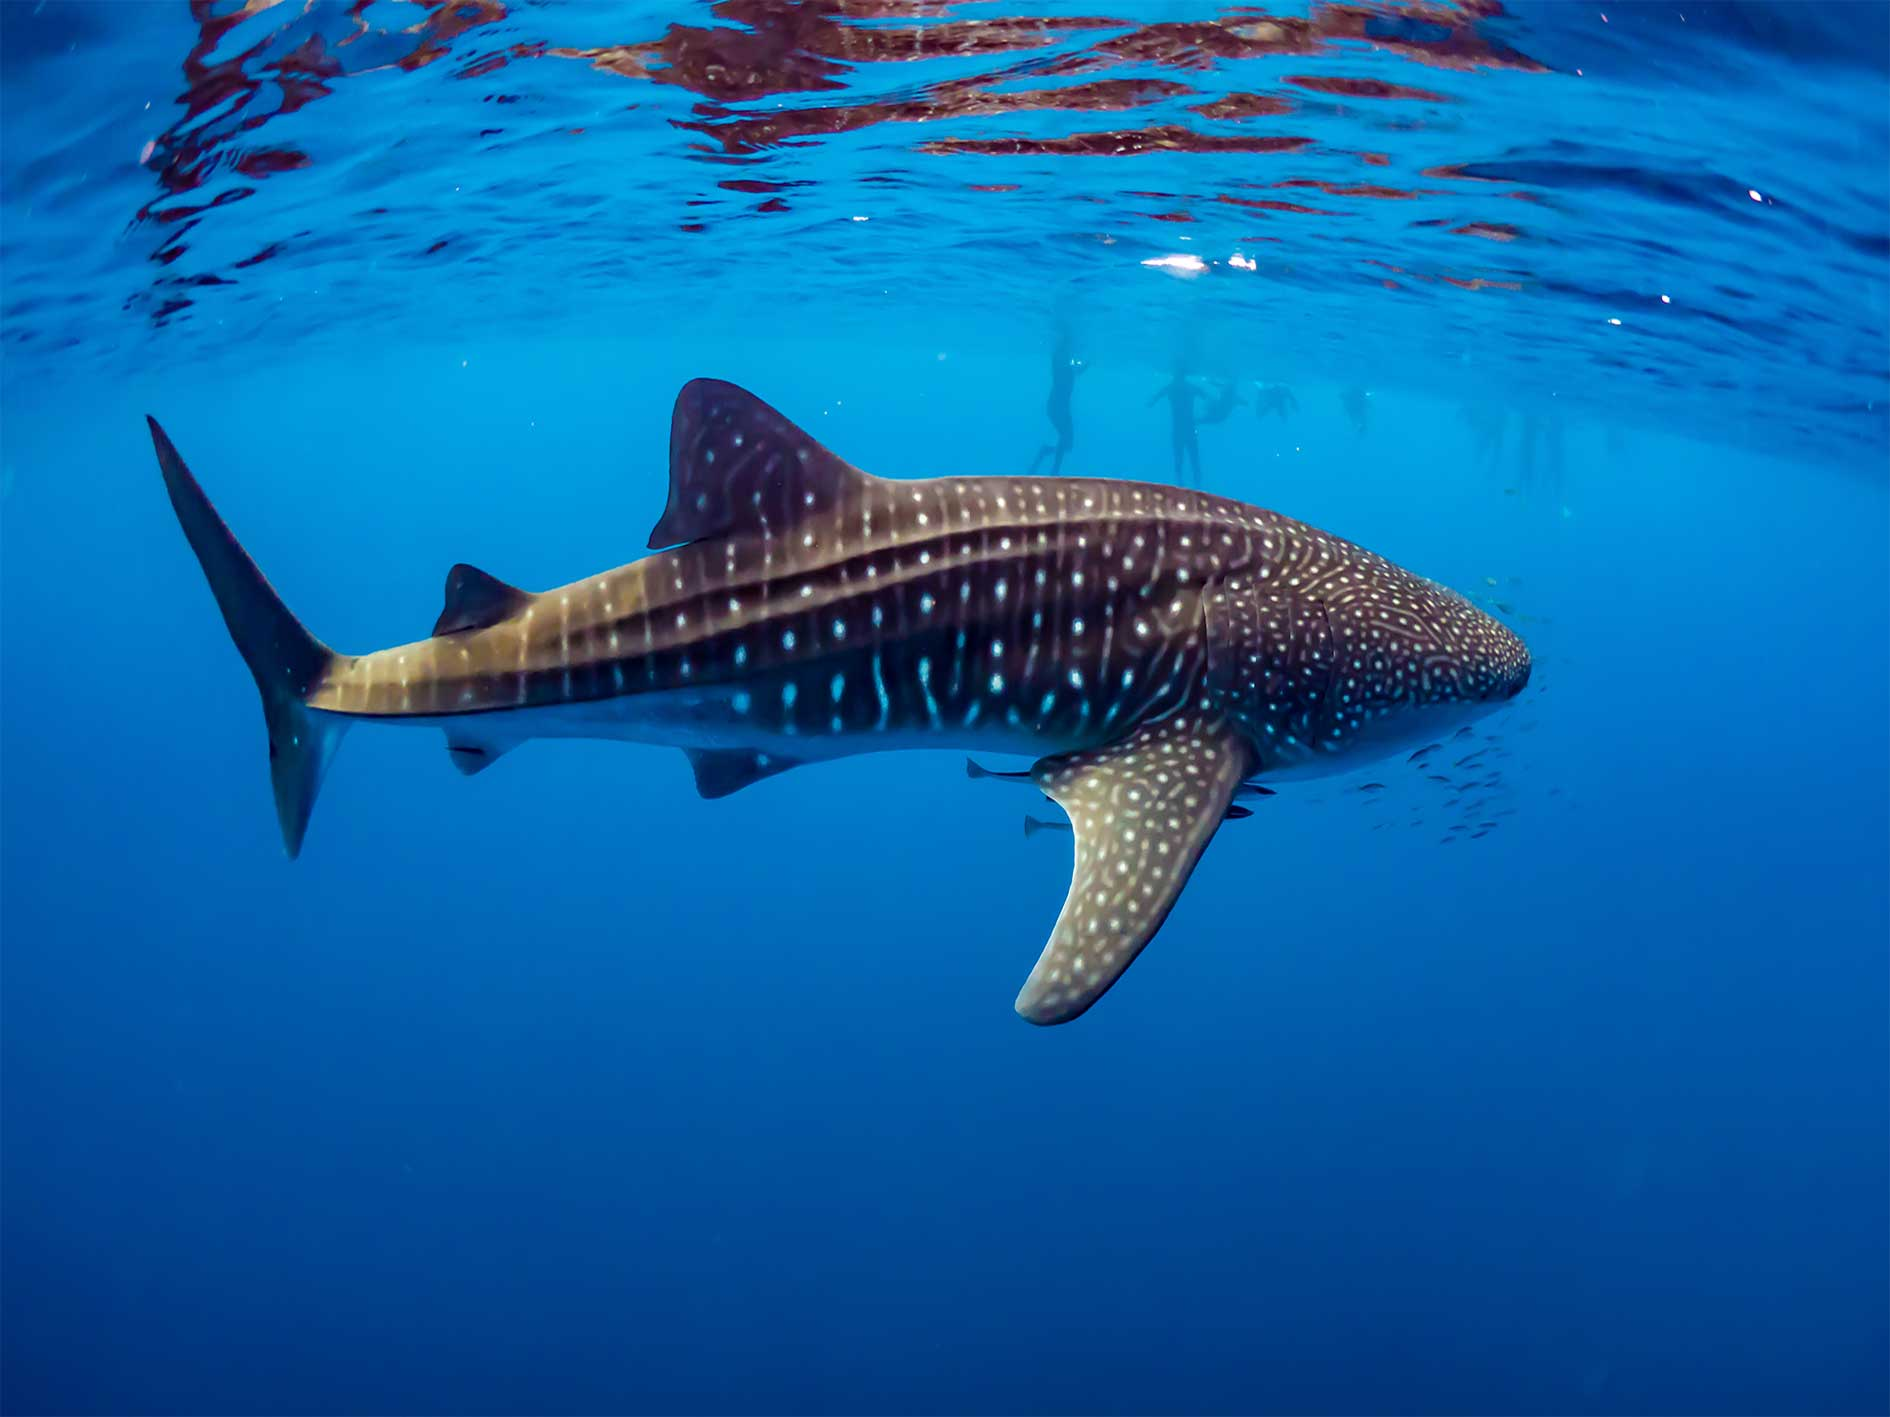 Whale Shark, Swim, Snorkel, sea kayak, Whale Shark Adventure Package, Ultimate Safari, Reef and Beach, eco tour, Exmouth, Ningaloo Reef, Western Australia